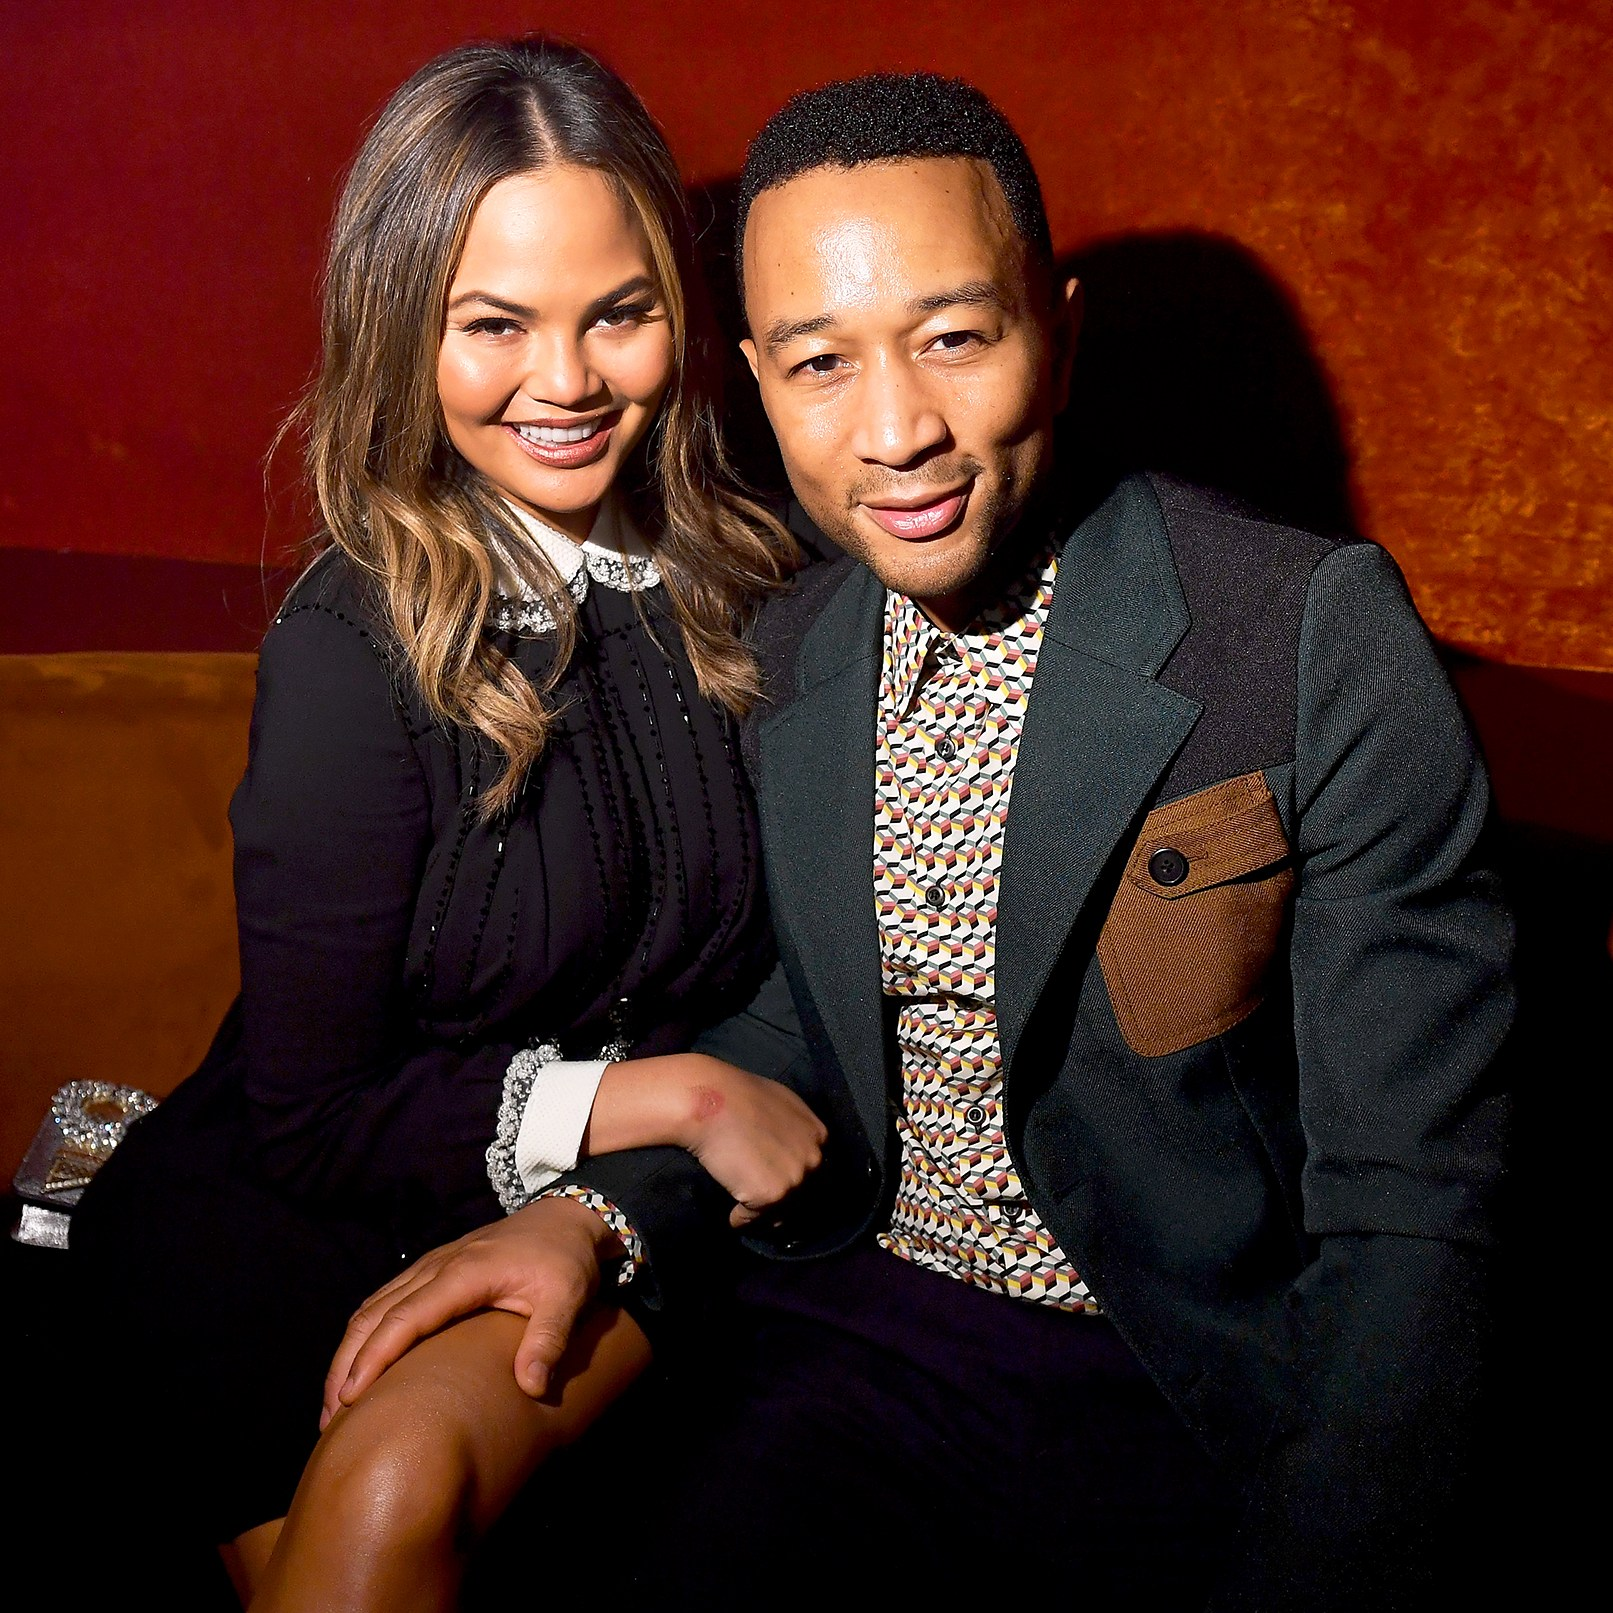 Chrissy Teigen and John Legend attends the Miu Miu aftershow during the Paris Fashion Week at Boum Boum in Paris, France.